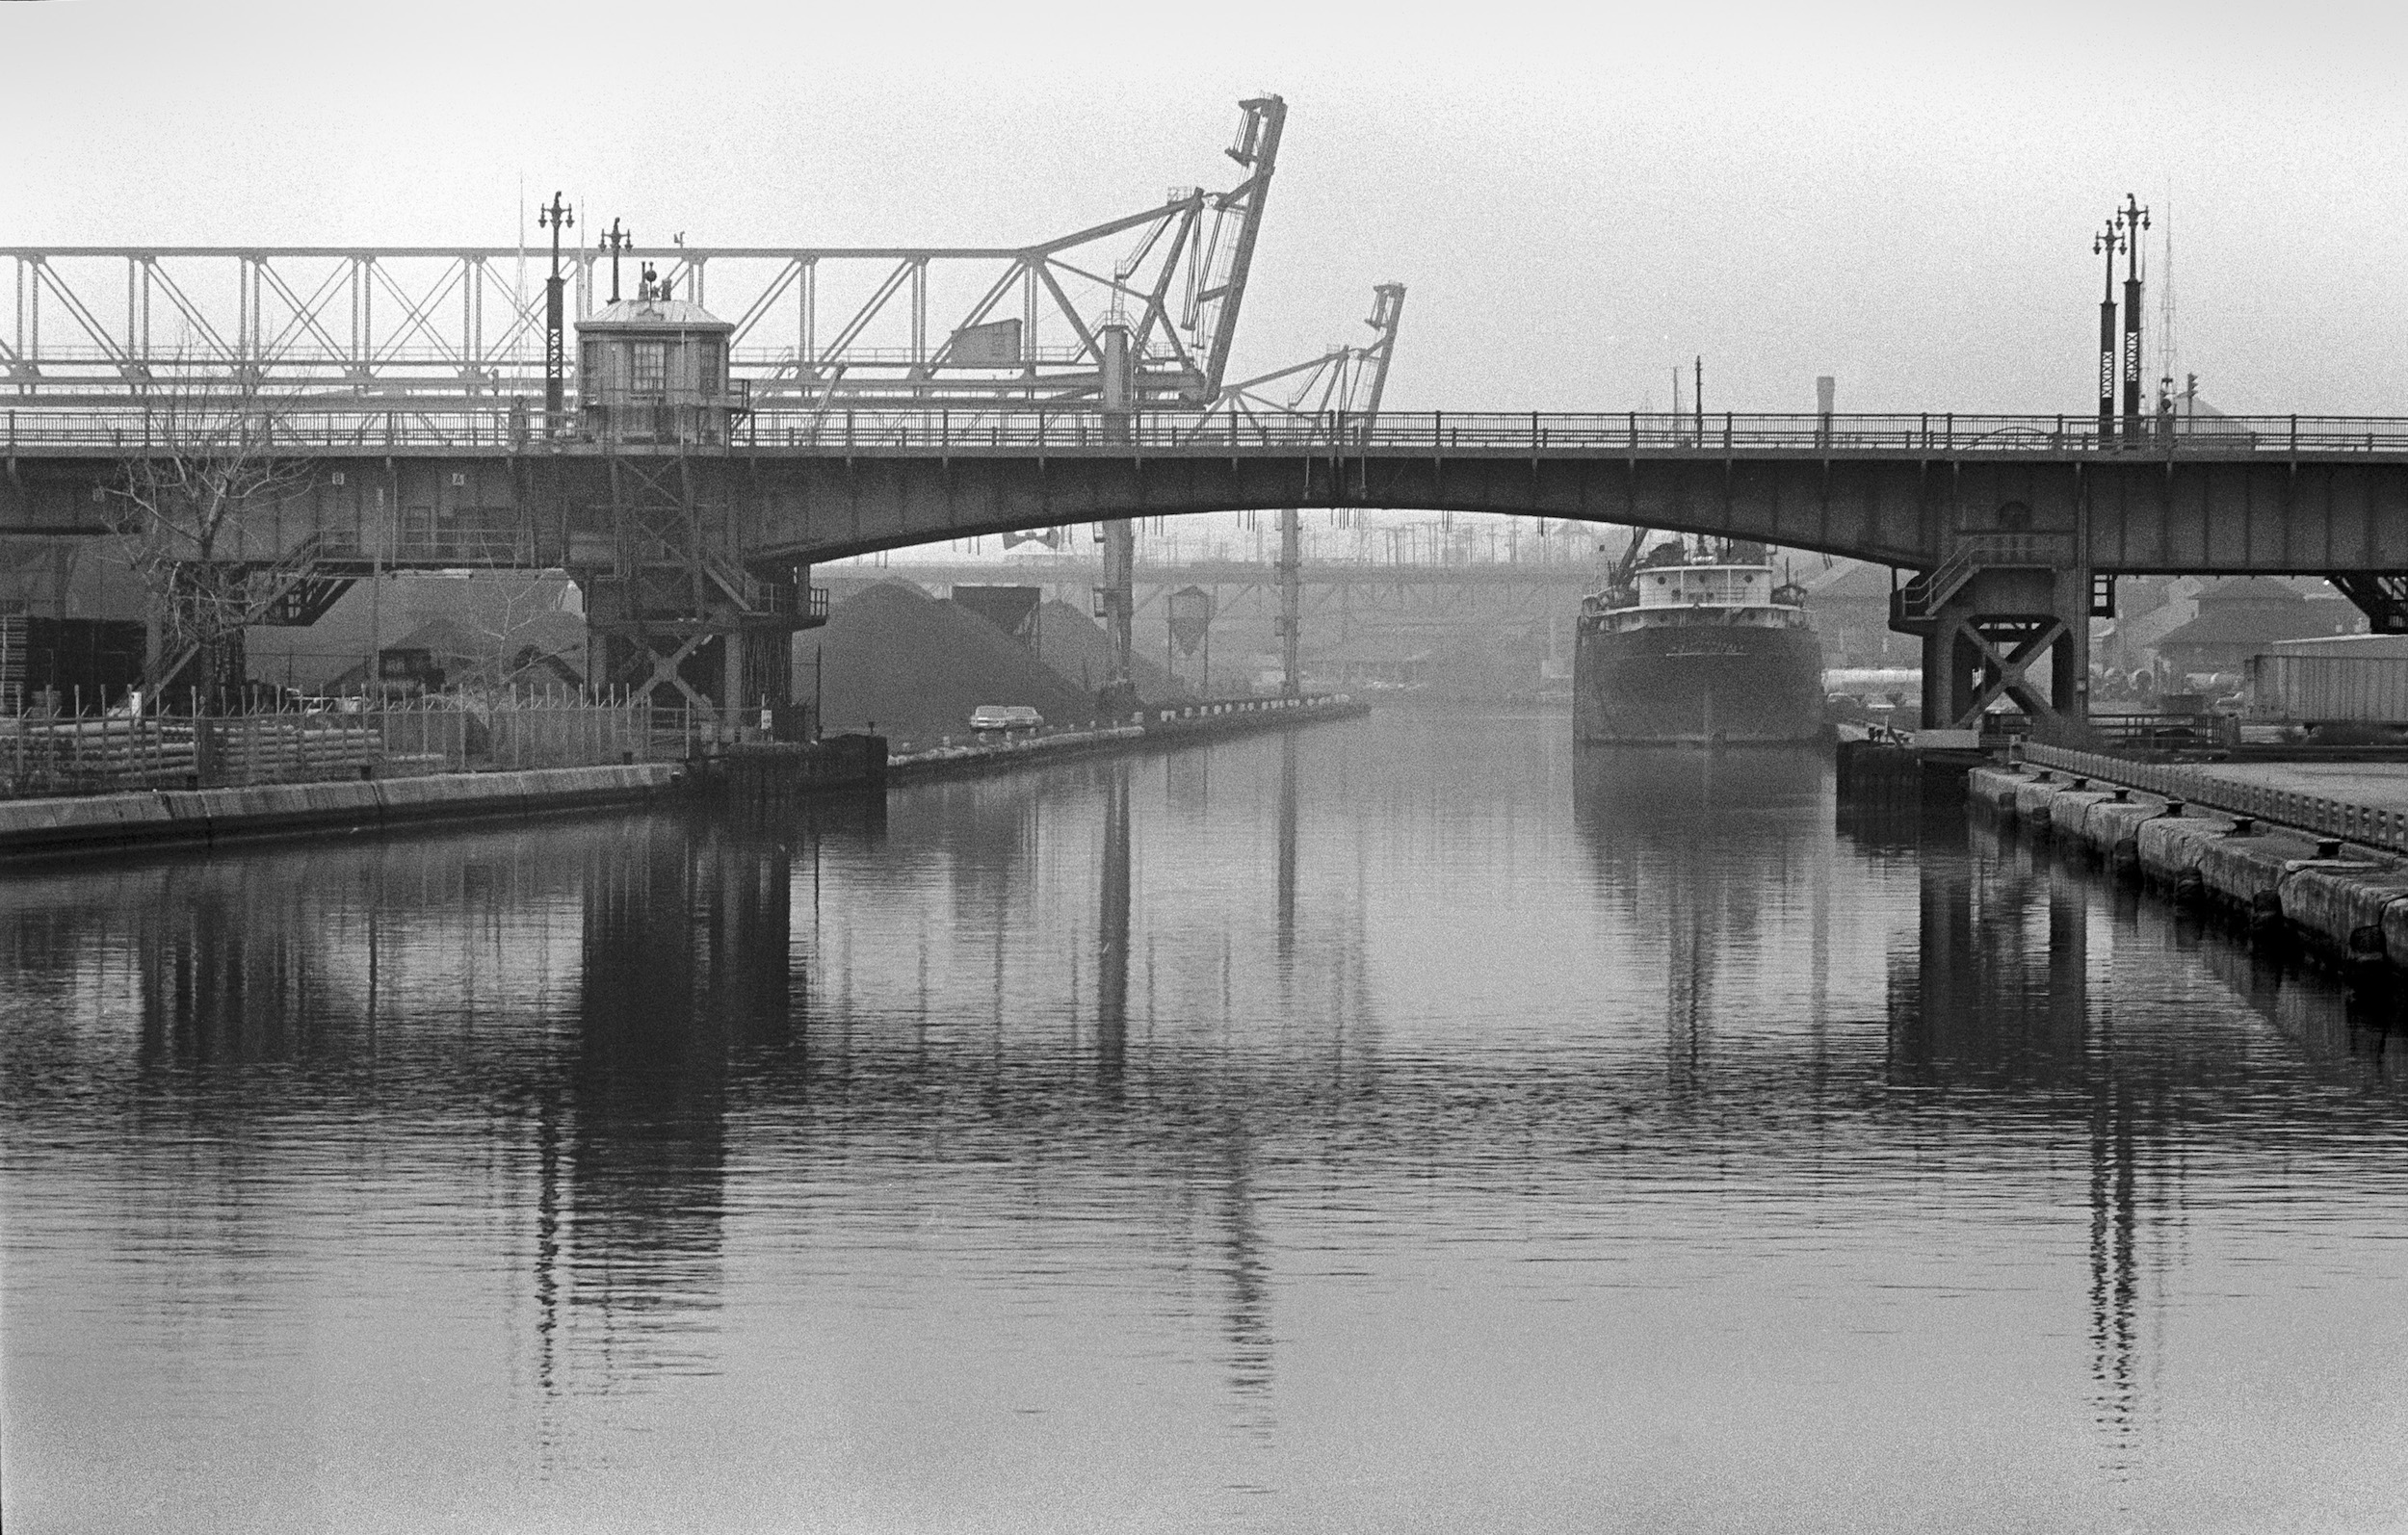 A bridge over the Menomonee River, taken in 1970.